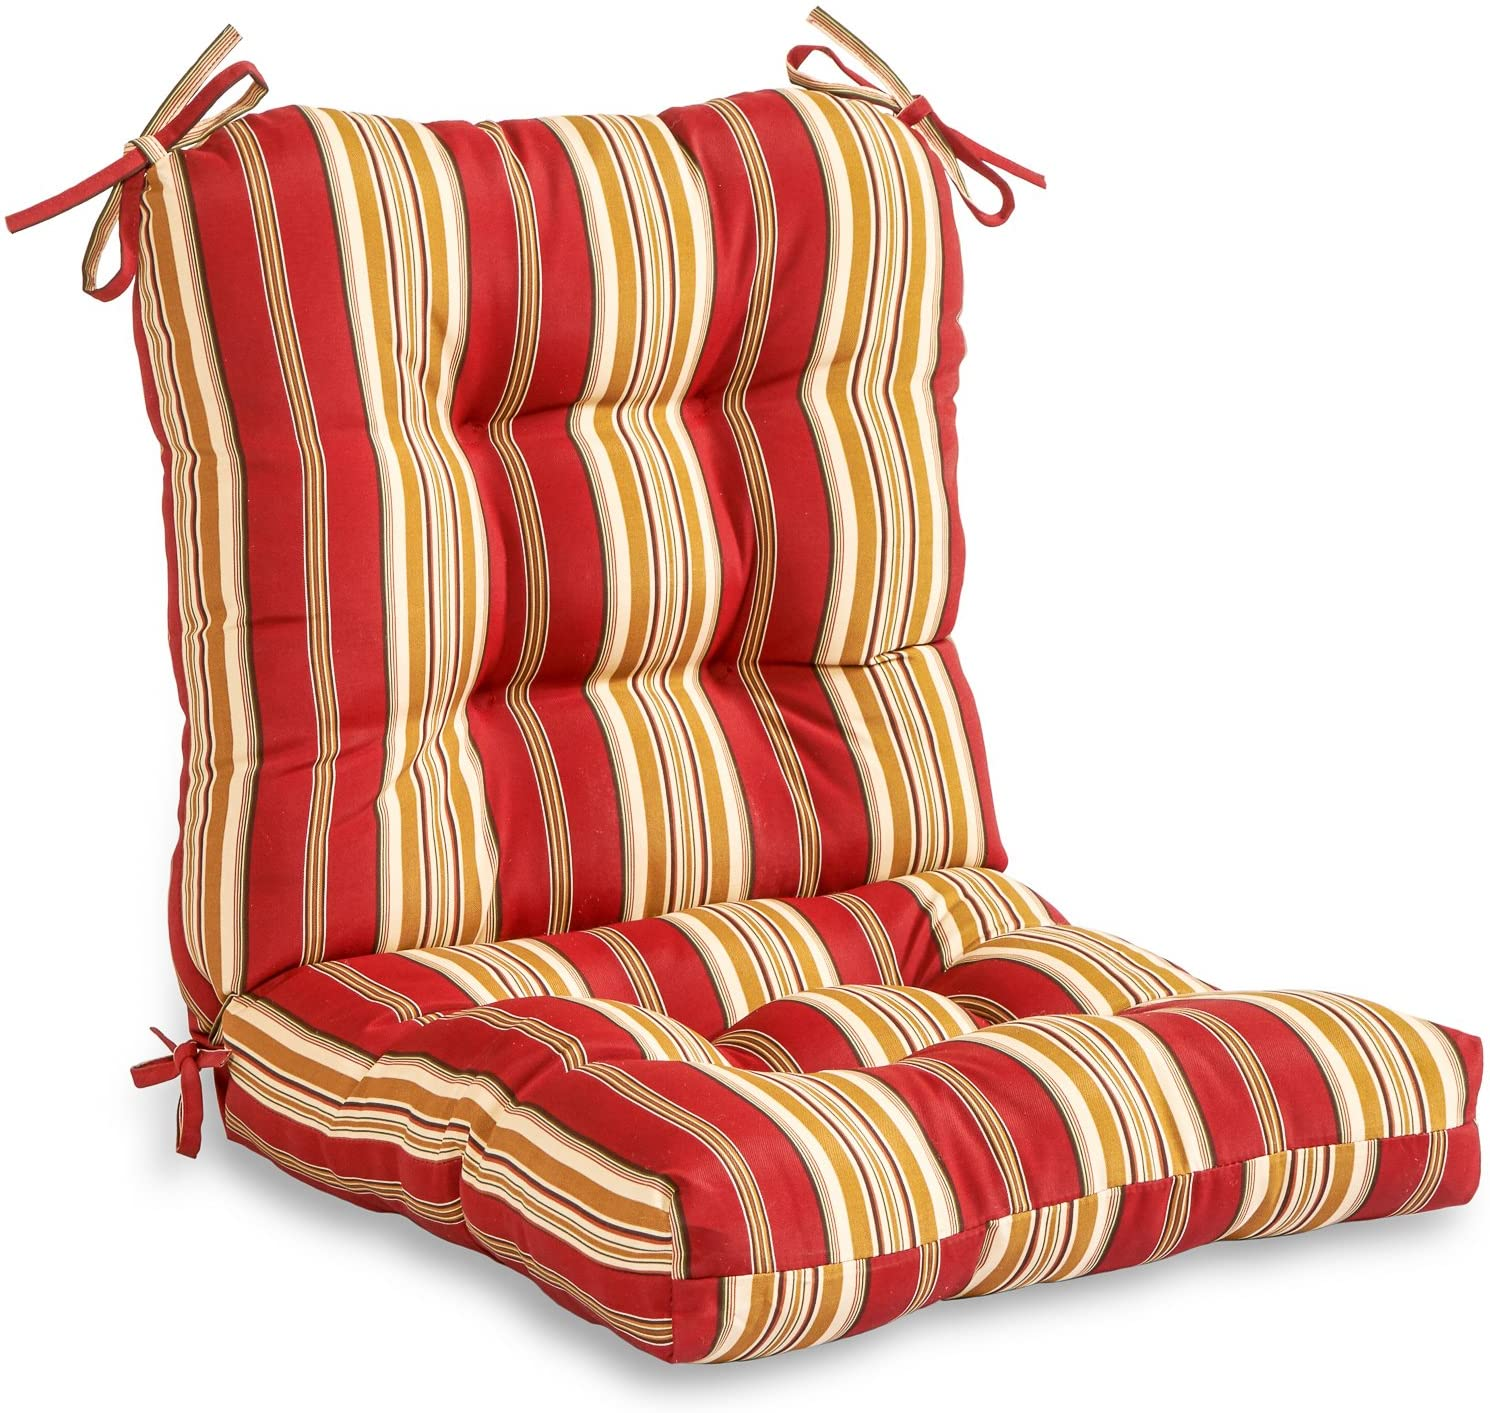 Greendale Home Fashions AZ20 ROMASTRIPE Tuscan Stripe 20'' x 20'' Outdoor  Seat/Back Chair Cushion, 20 Count Pack of 20